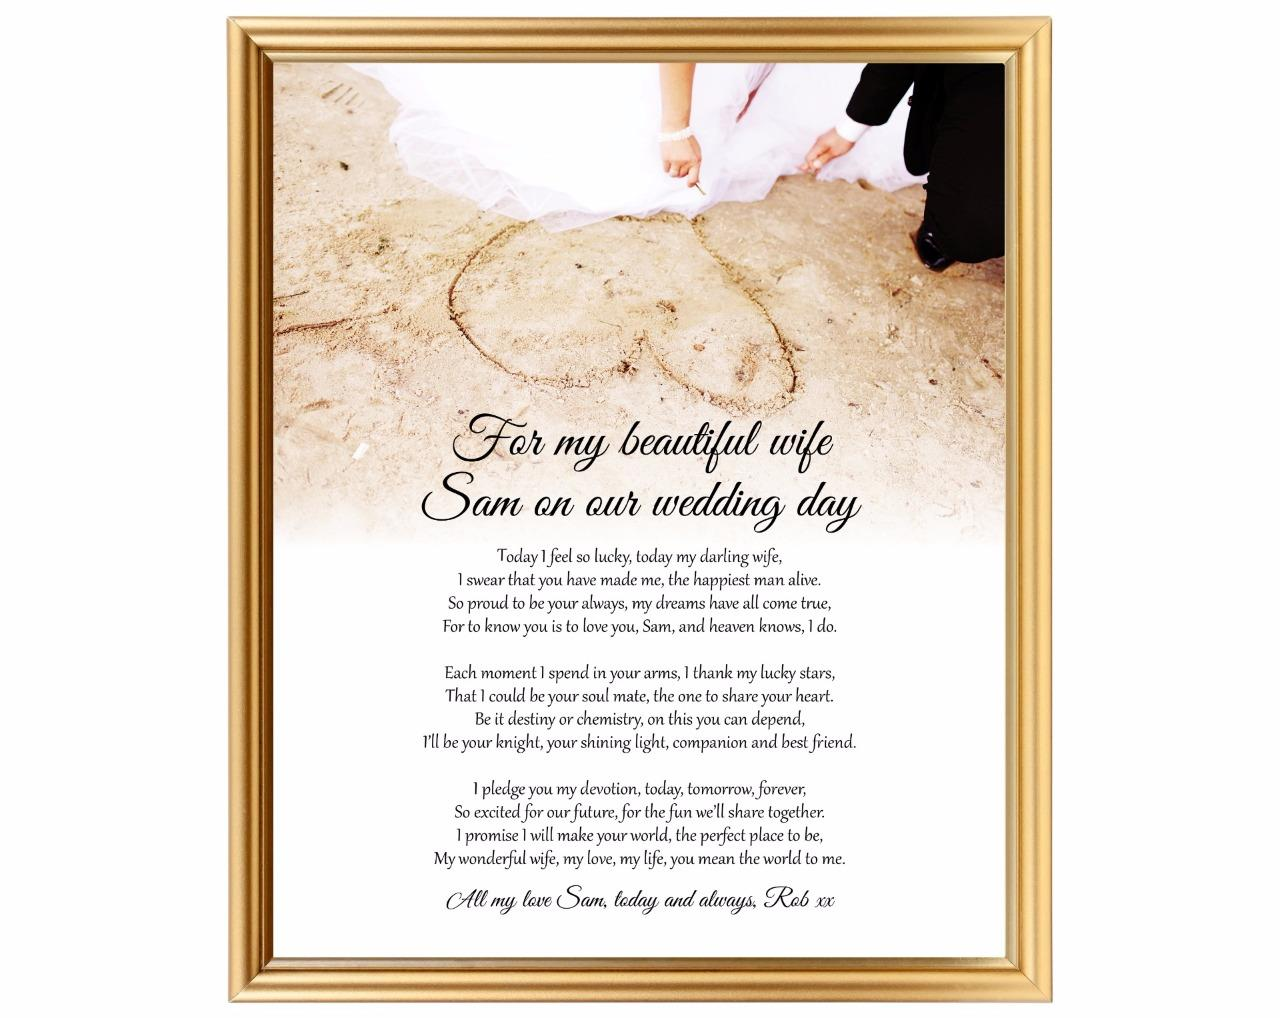 Wedding Gift For Groom From Wife : Wedding gift for wife - Groom to bride gift - Personalised keepsake ...